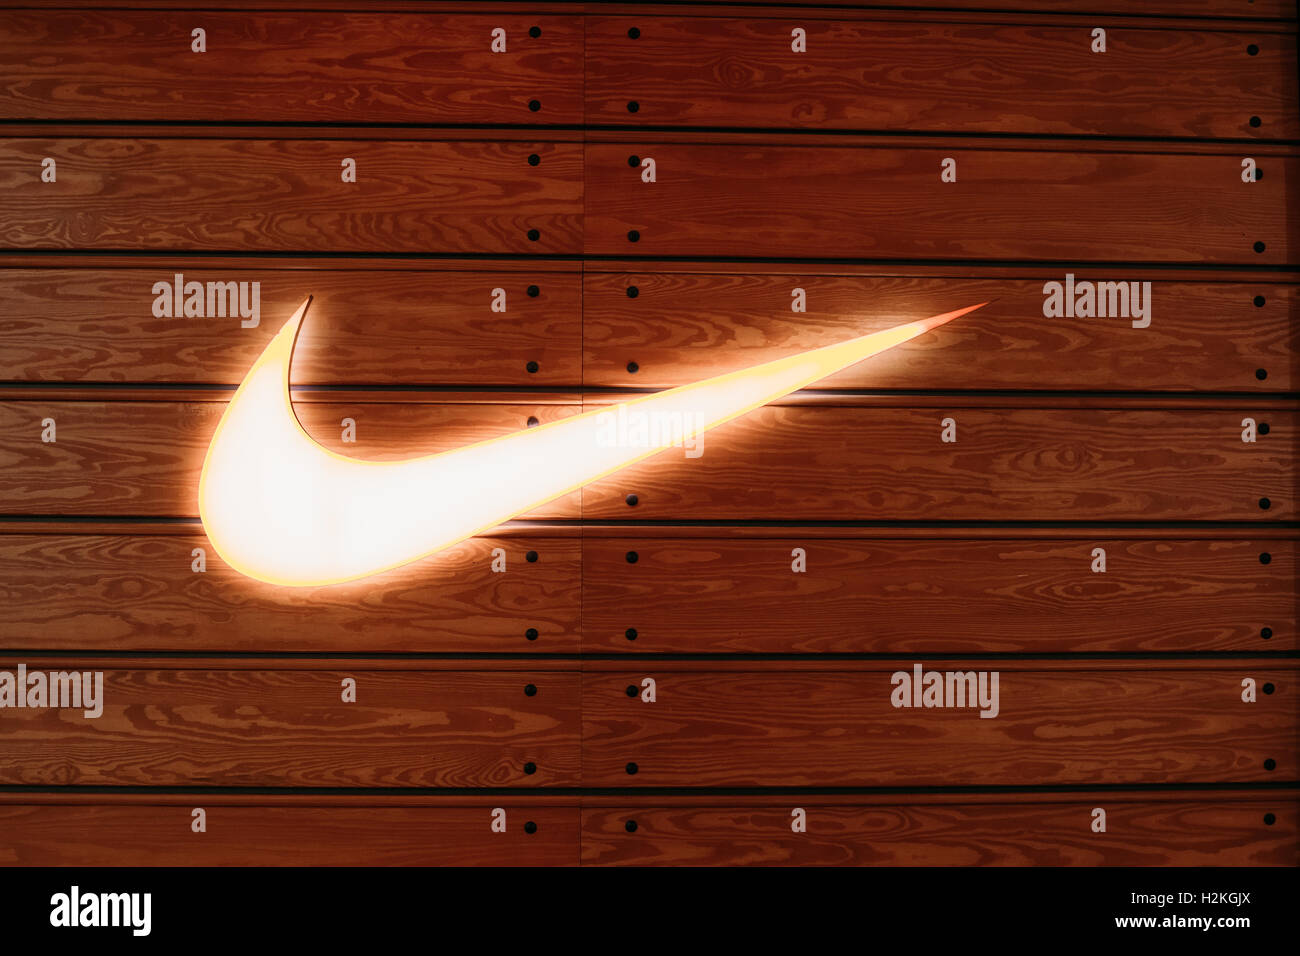 Vilnius, Lithuania - July 08, 2016: Close The Glowing Yellow Logotype Swoosh Of Nike Brand At Wooden Batten Wall - Stock Image